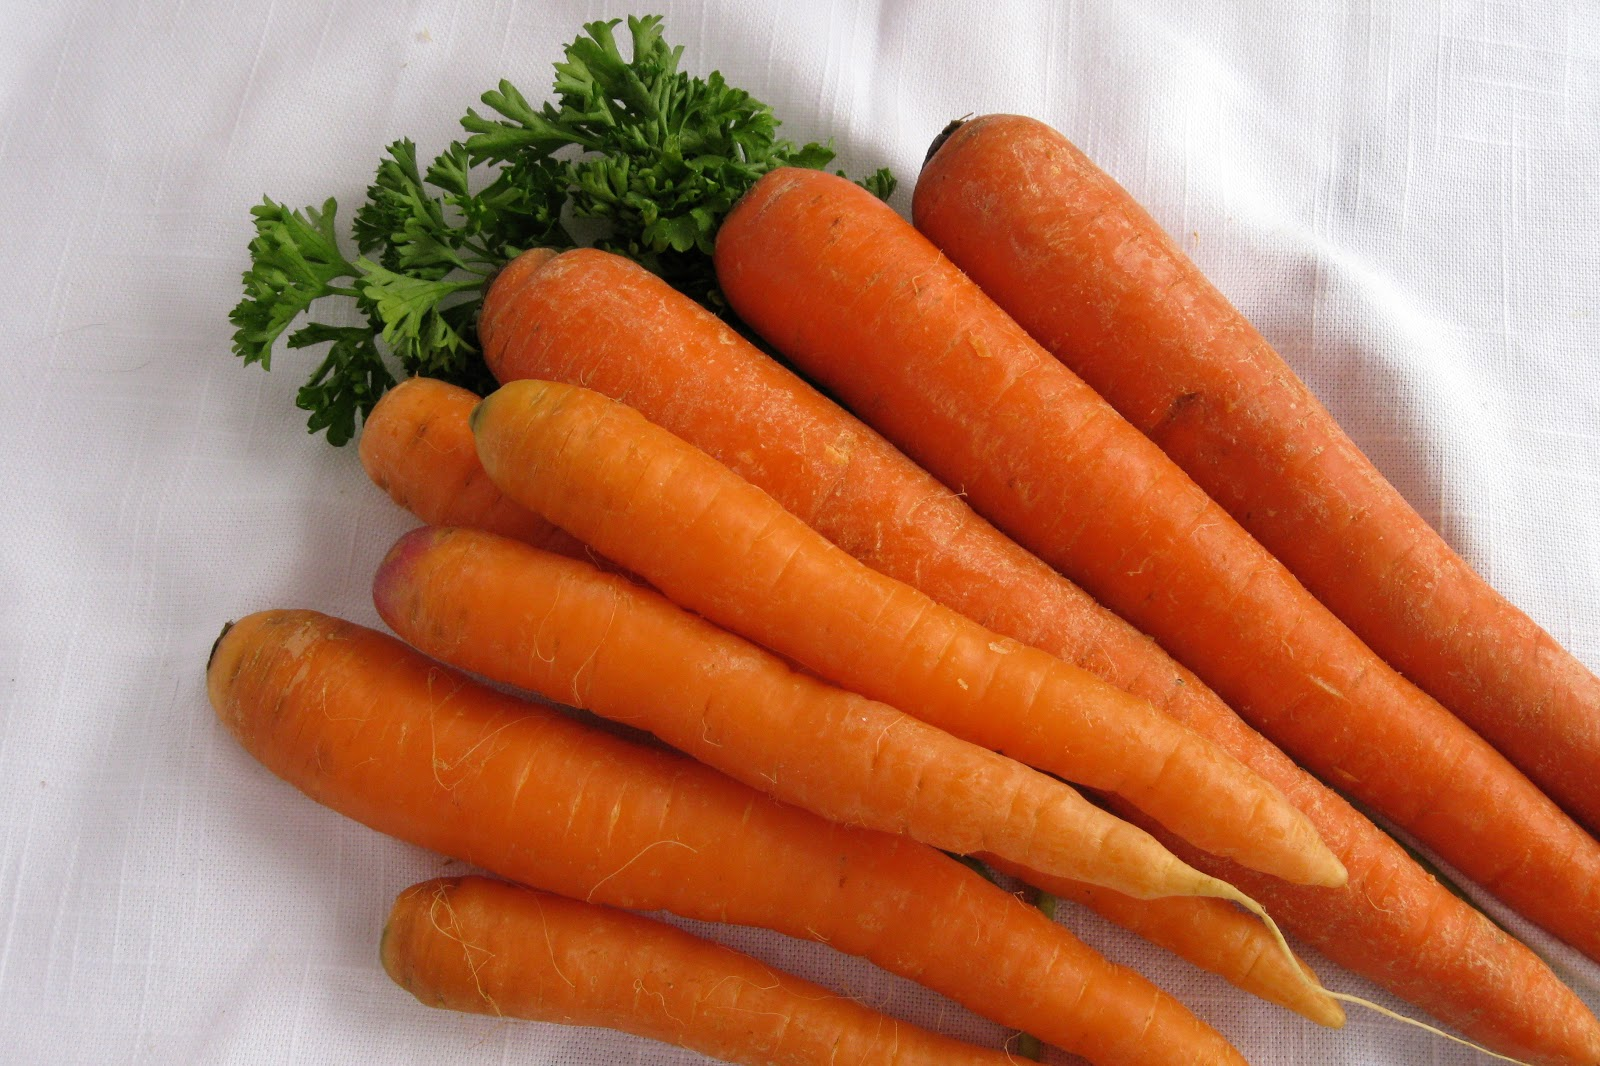 Carrot - Fruits And Vegetables